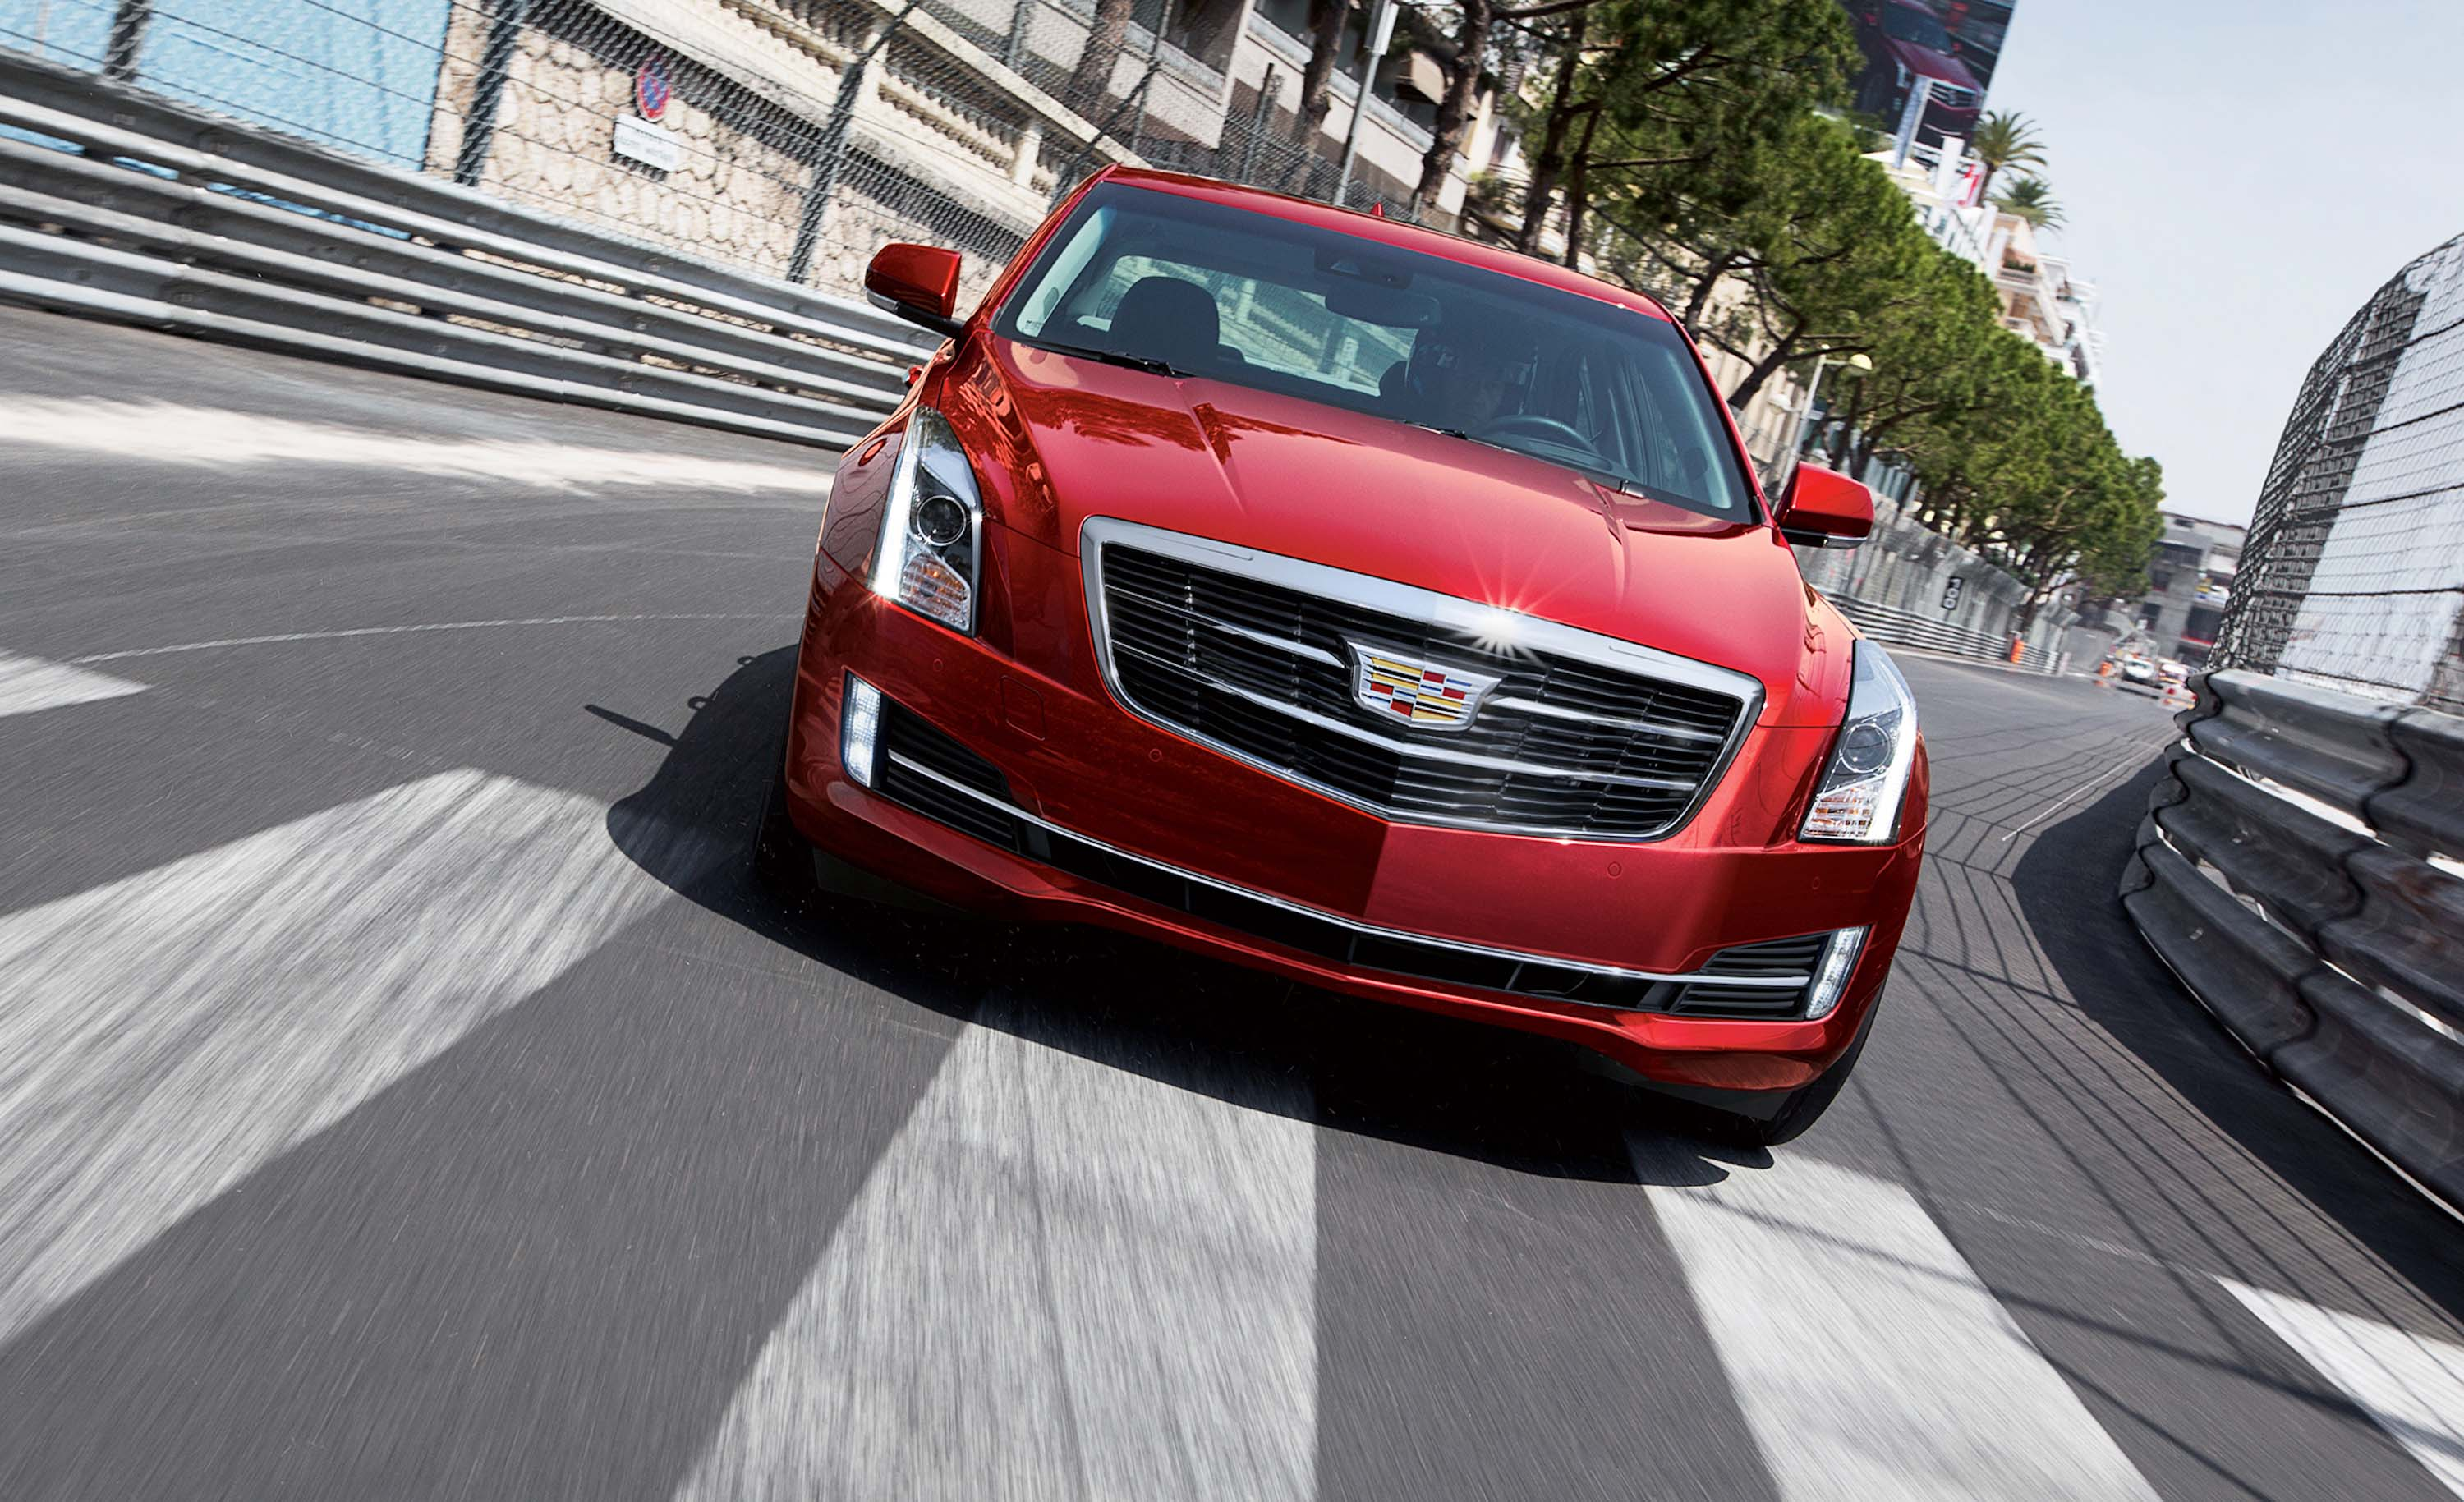 drive edmunds seocu lease v sedan info first cadillac lts ats review